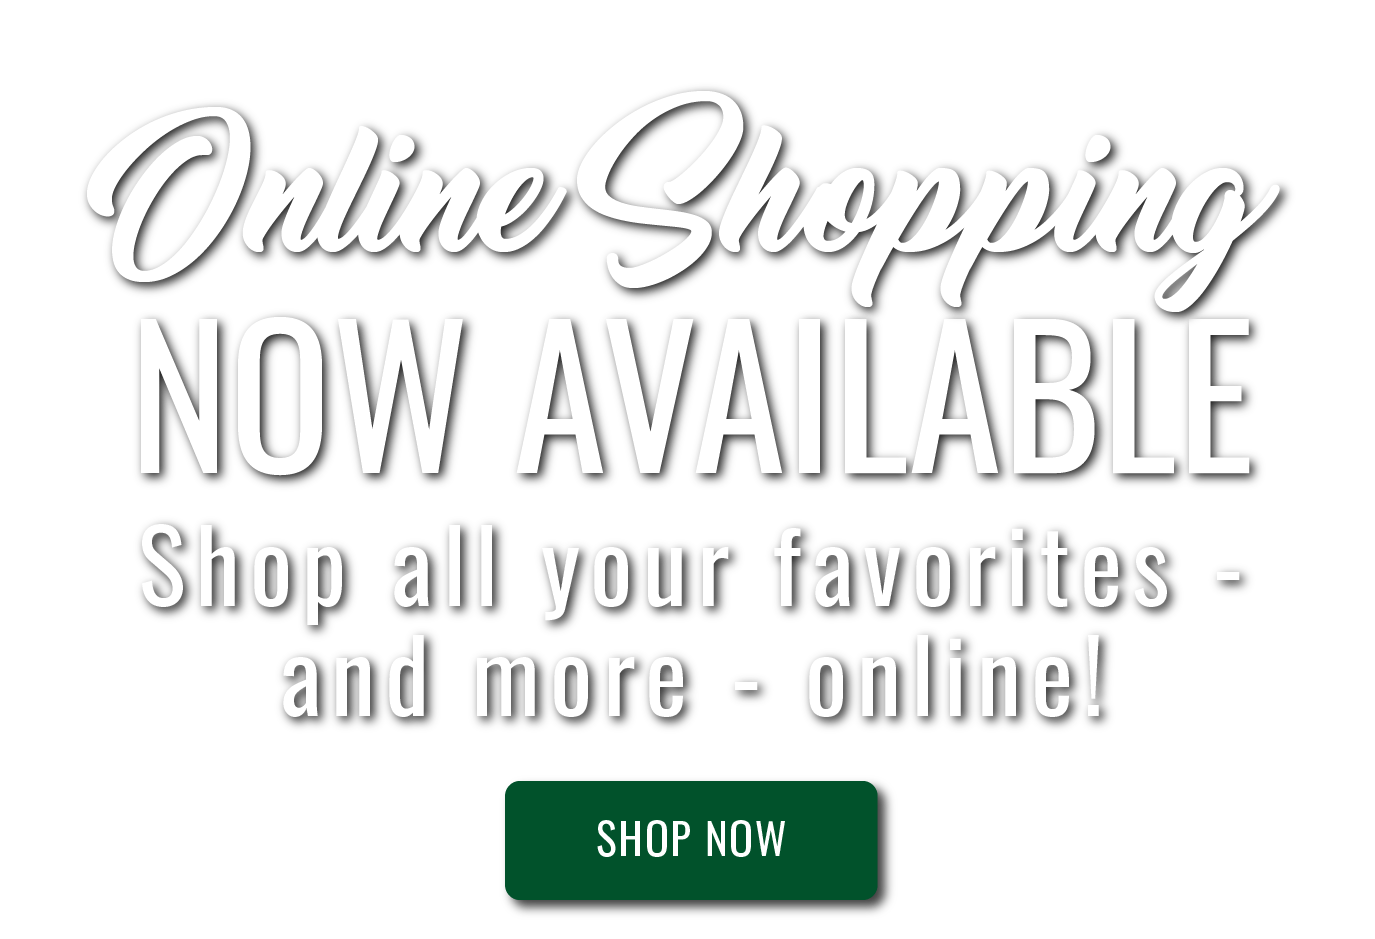 Online Shopping Now Available. Shop all your favorites and more online! Shop now.